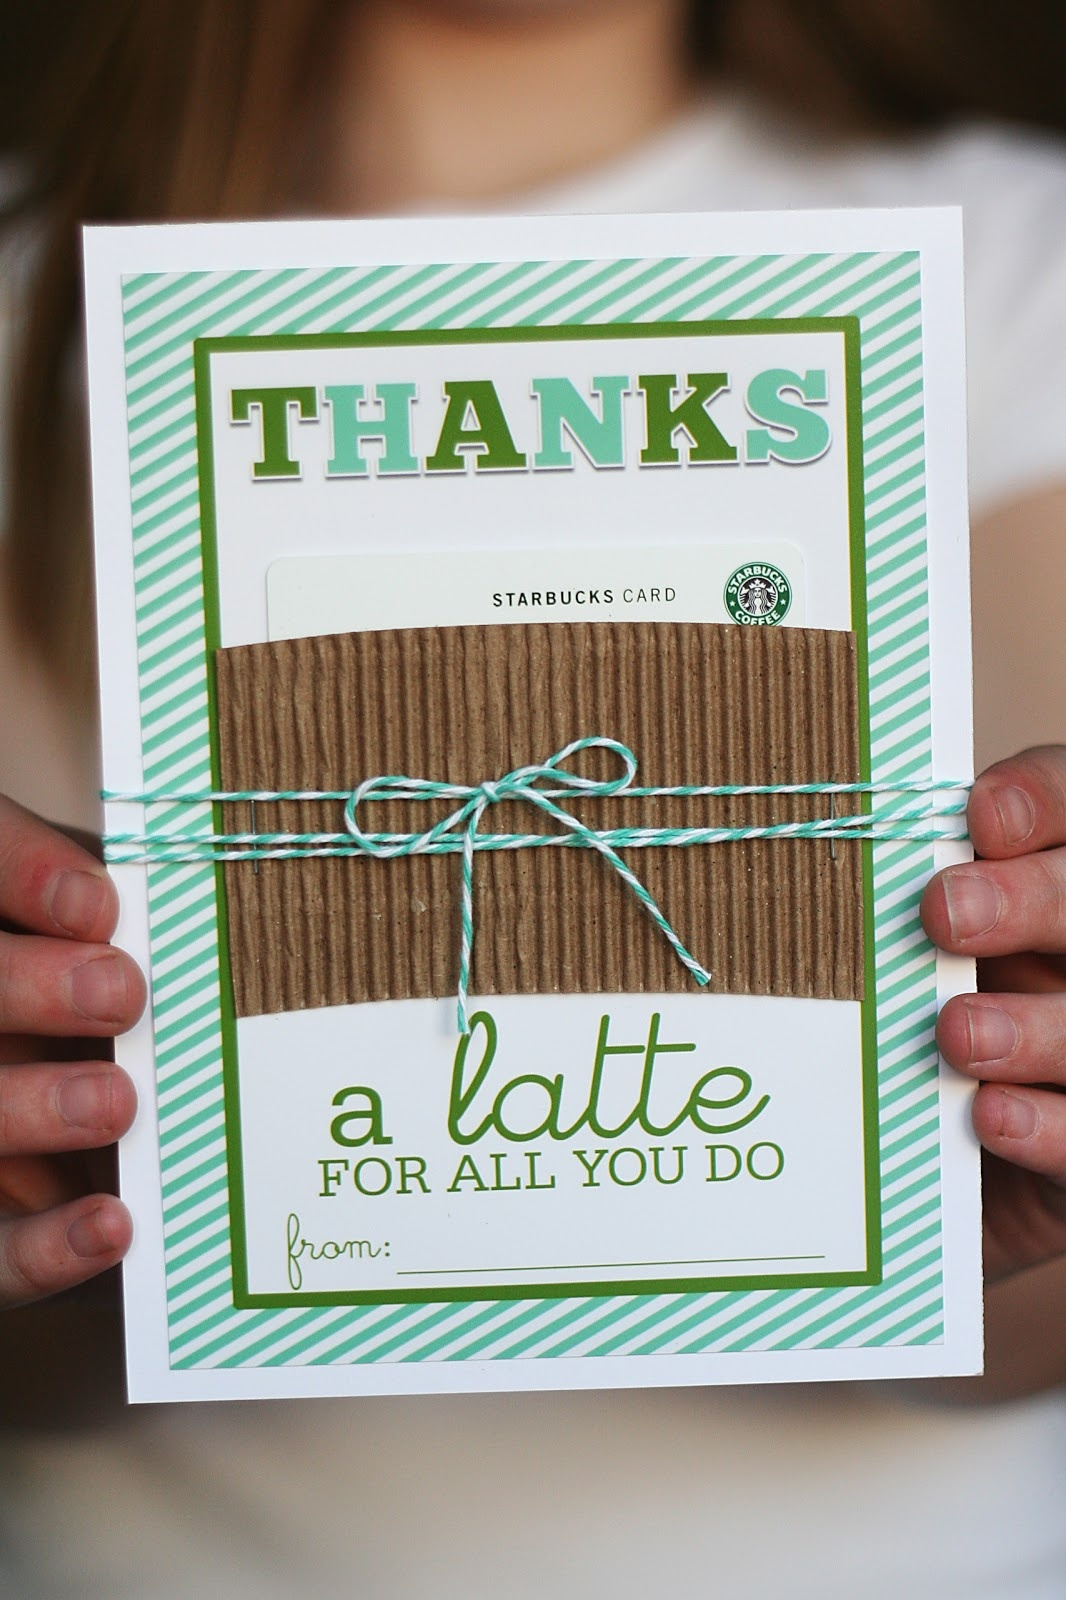 Thanks A Latte Card You Can Print For Free   Eighteen25 - Thanks A Latte Free Printable